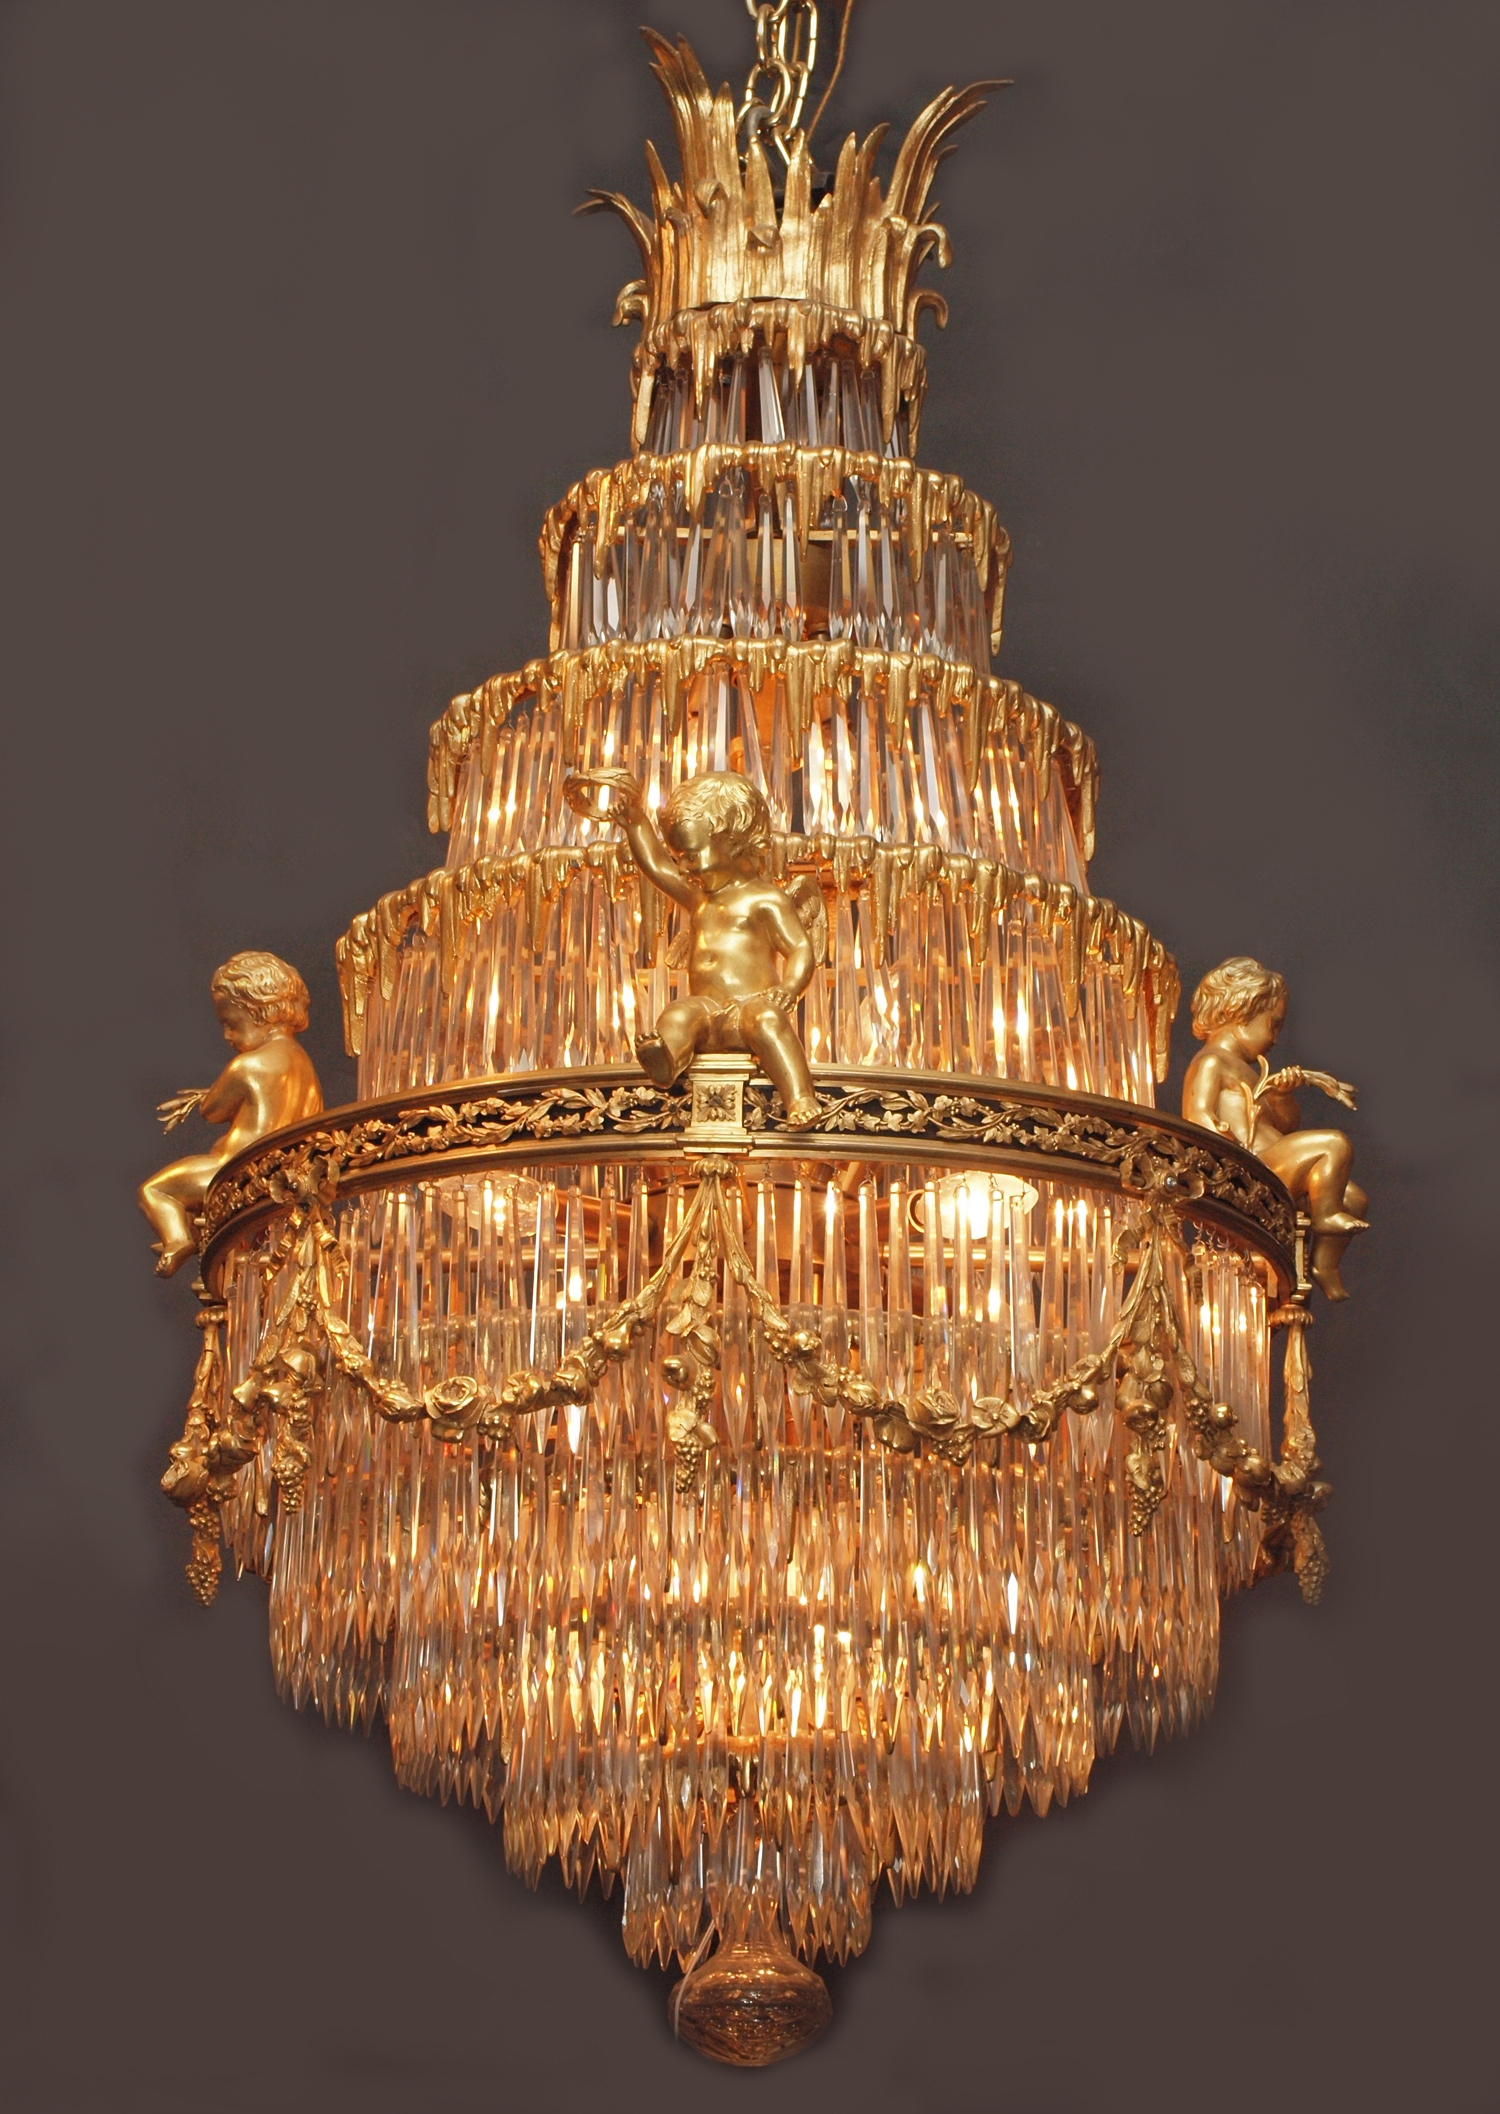 Antiques Classifieds Antiques Antique Lamps And Lighting Pertaining To Antique Chandeliers (Image 6 of 15)